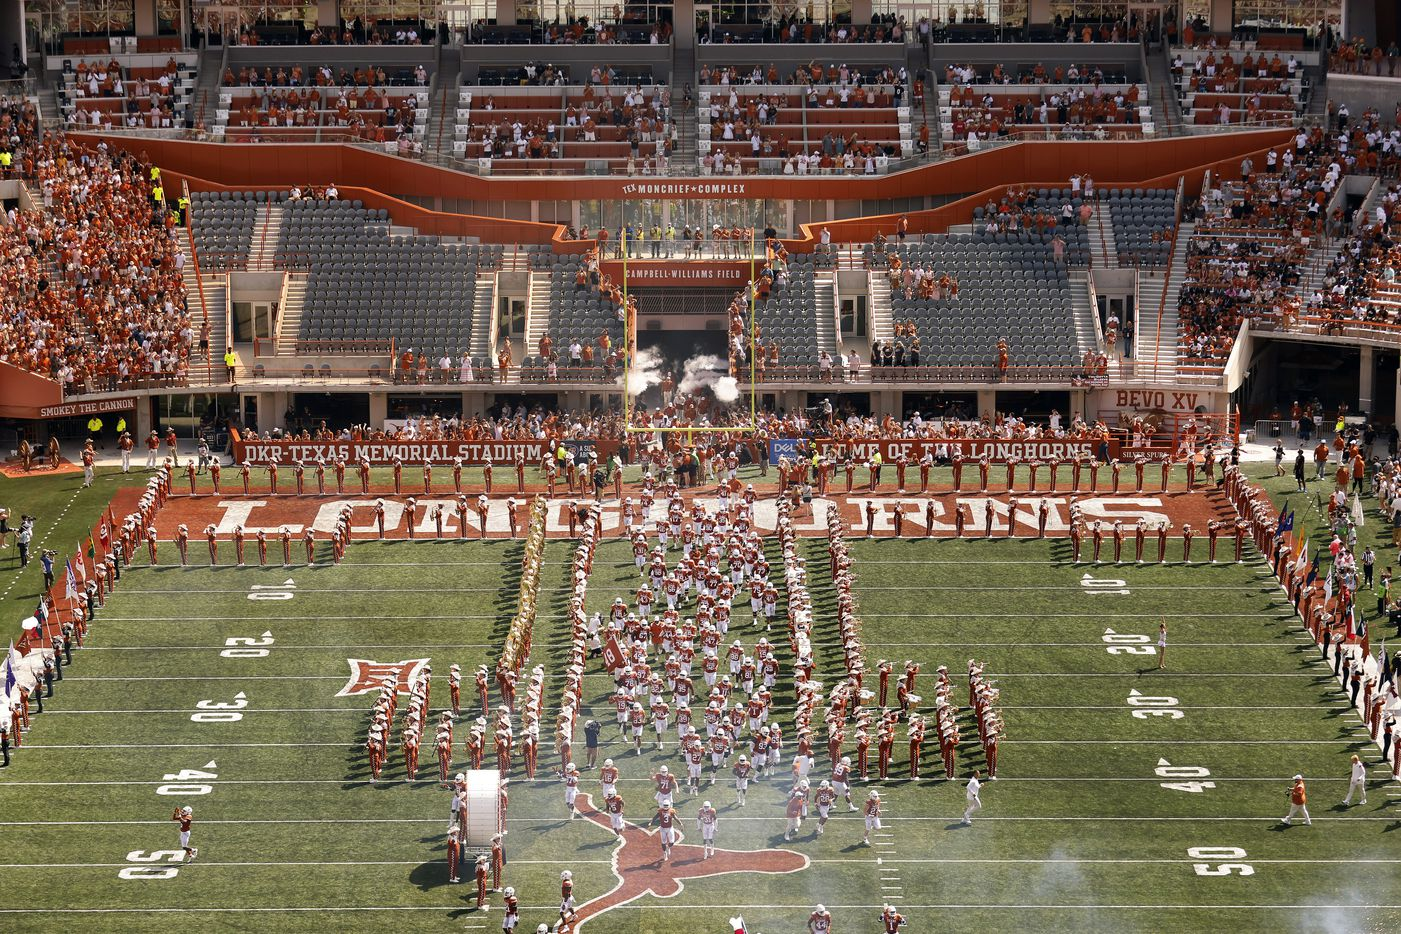 The Texas Longhorns football team sprints down the middle of the field as they introduced to the DKR-Texas Memorial Stadium crowd in Austin, Saturday, September 4, 2021. The Longhorns were facing the Louisiana-Lafayette Ragin Cajuns in the season opener. (Tom Fox/The Dallas Morning News)